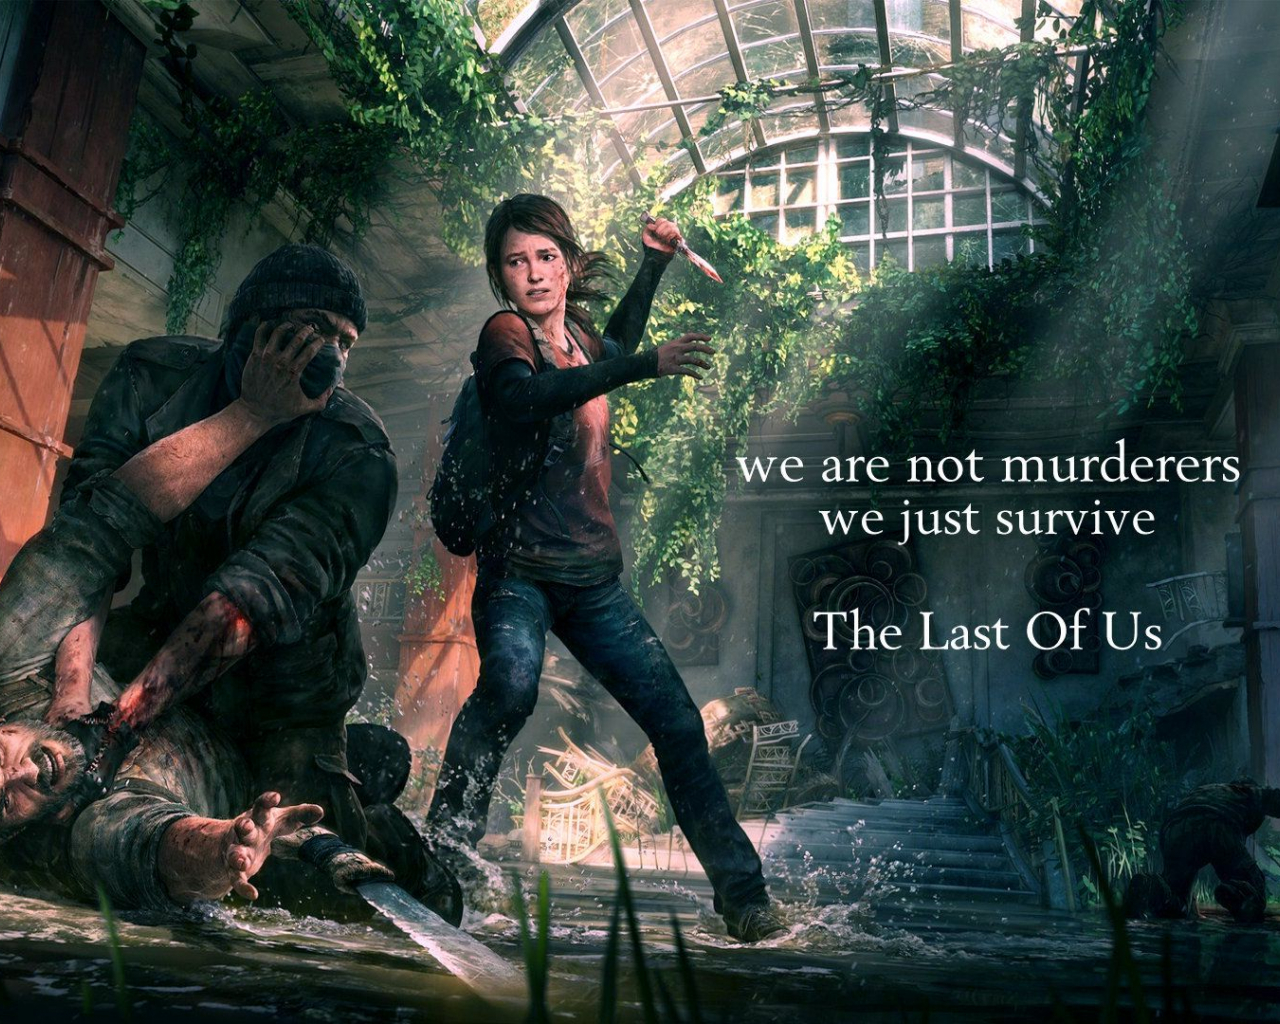 Free Download The Last Of Us Wallpaper Hd Ideas For The House Last